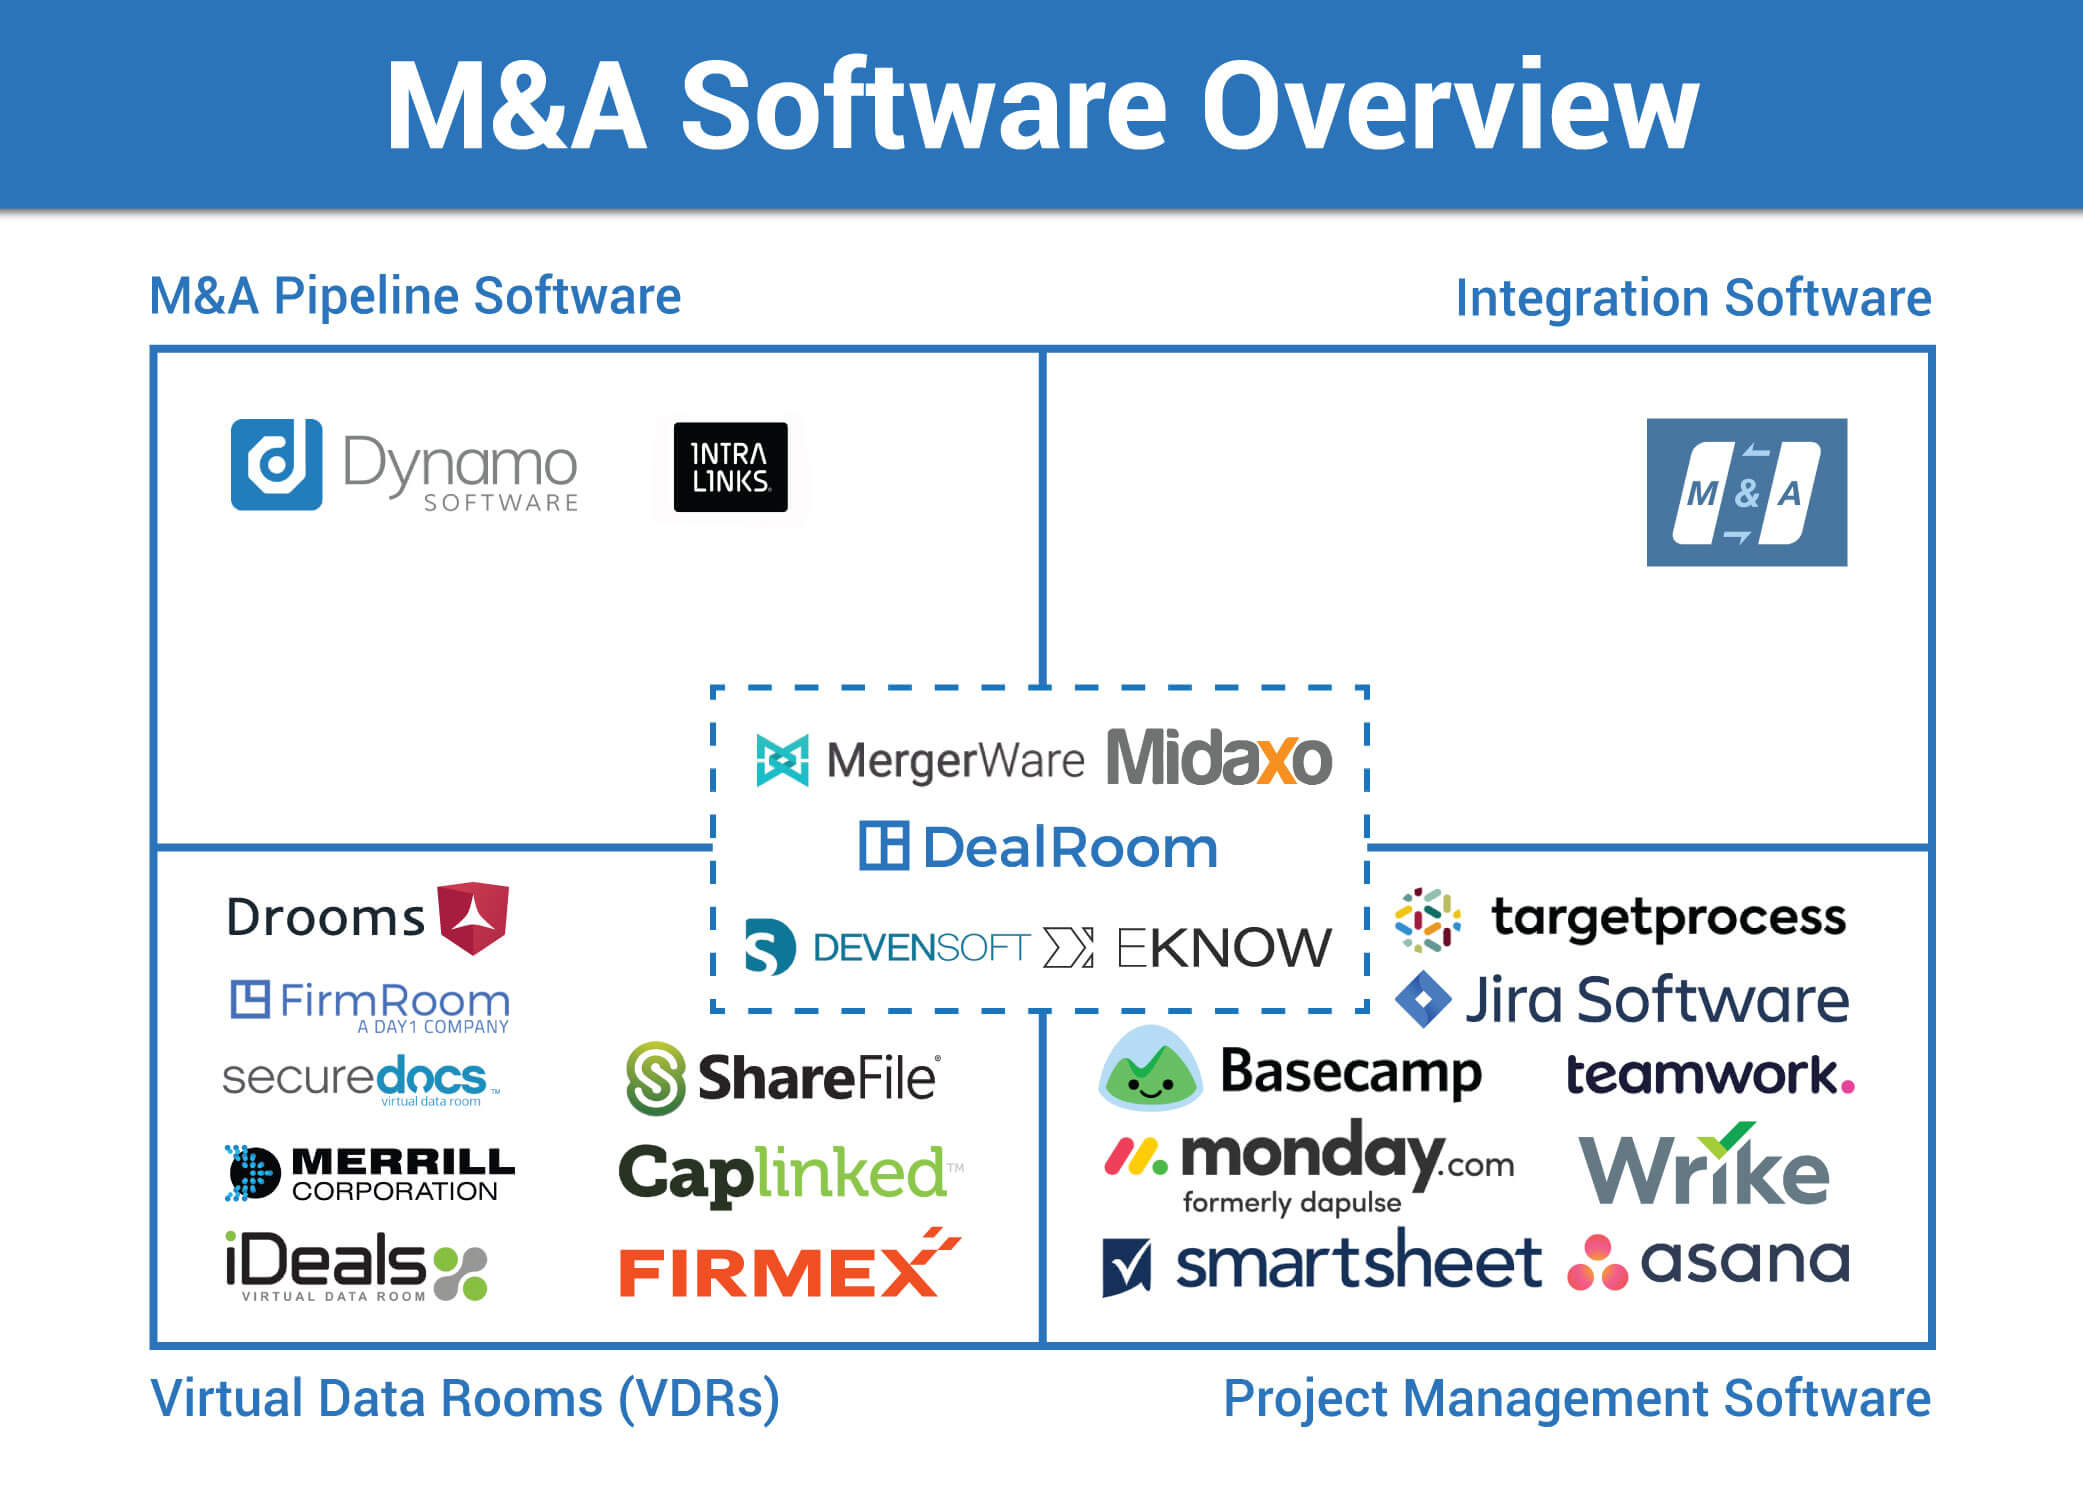 m&a software map